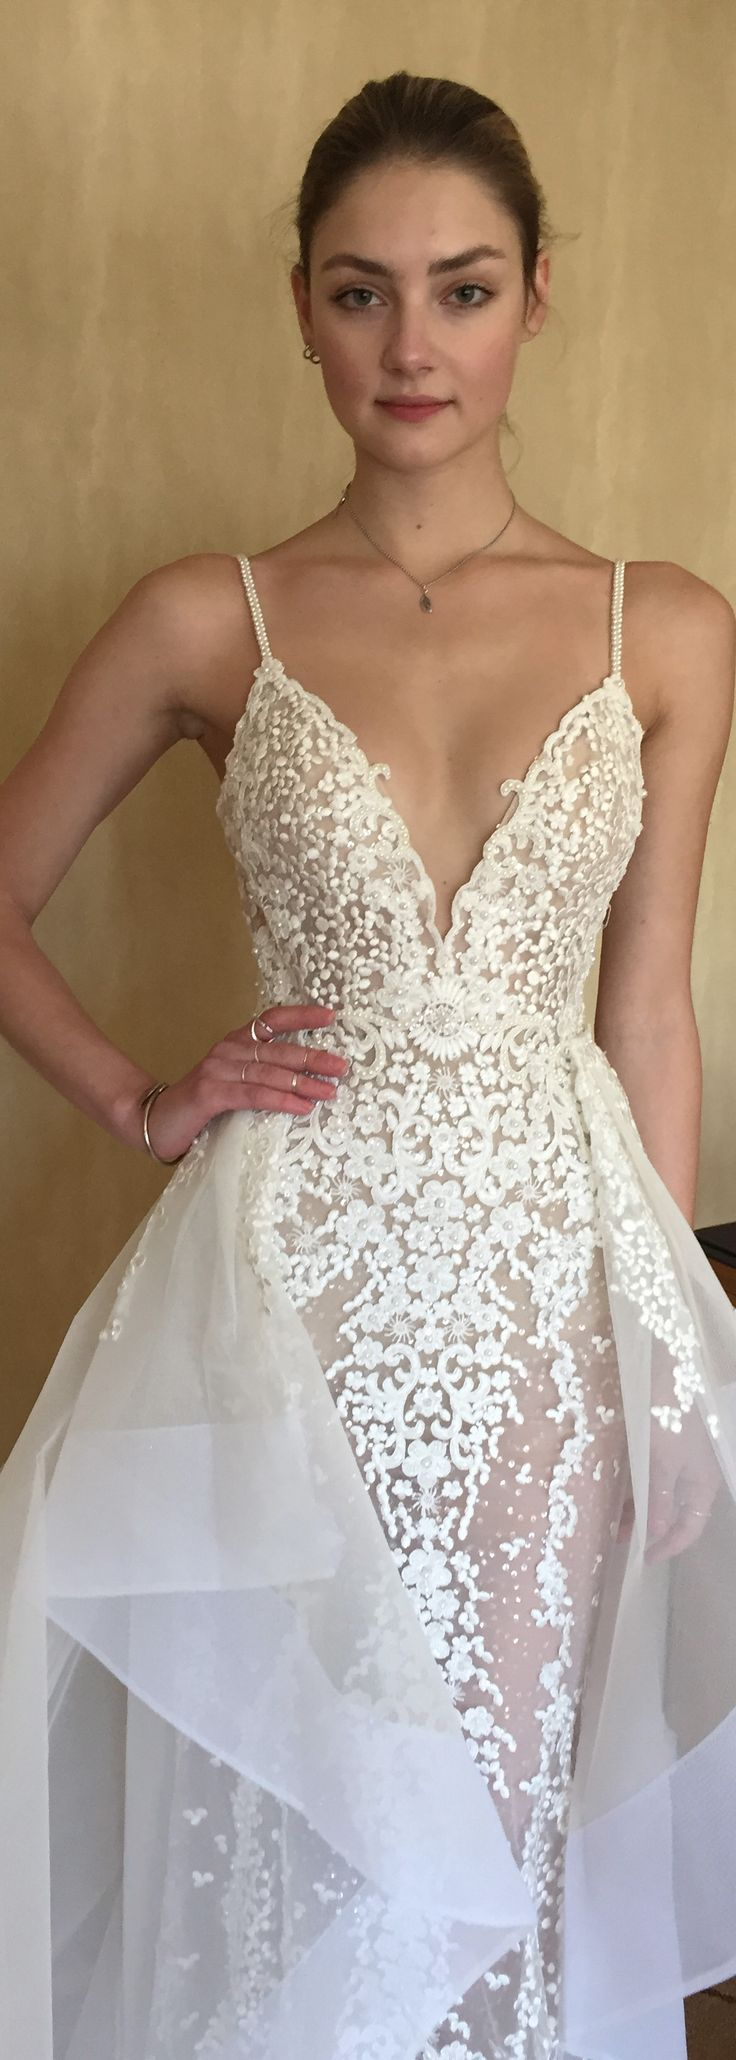 Oh this bertabridal gown is endlessly pretty weddings for Used wedding dresses fort wayne indiana